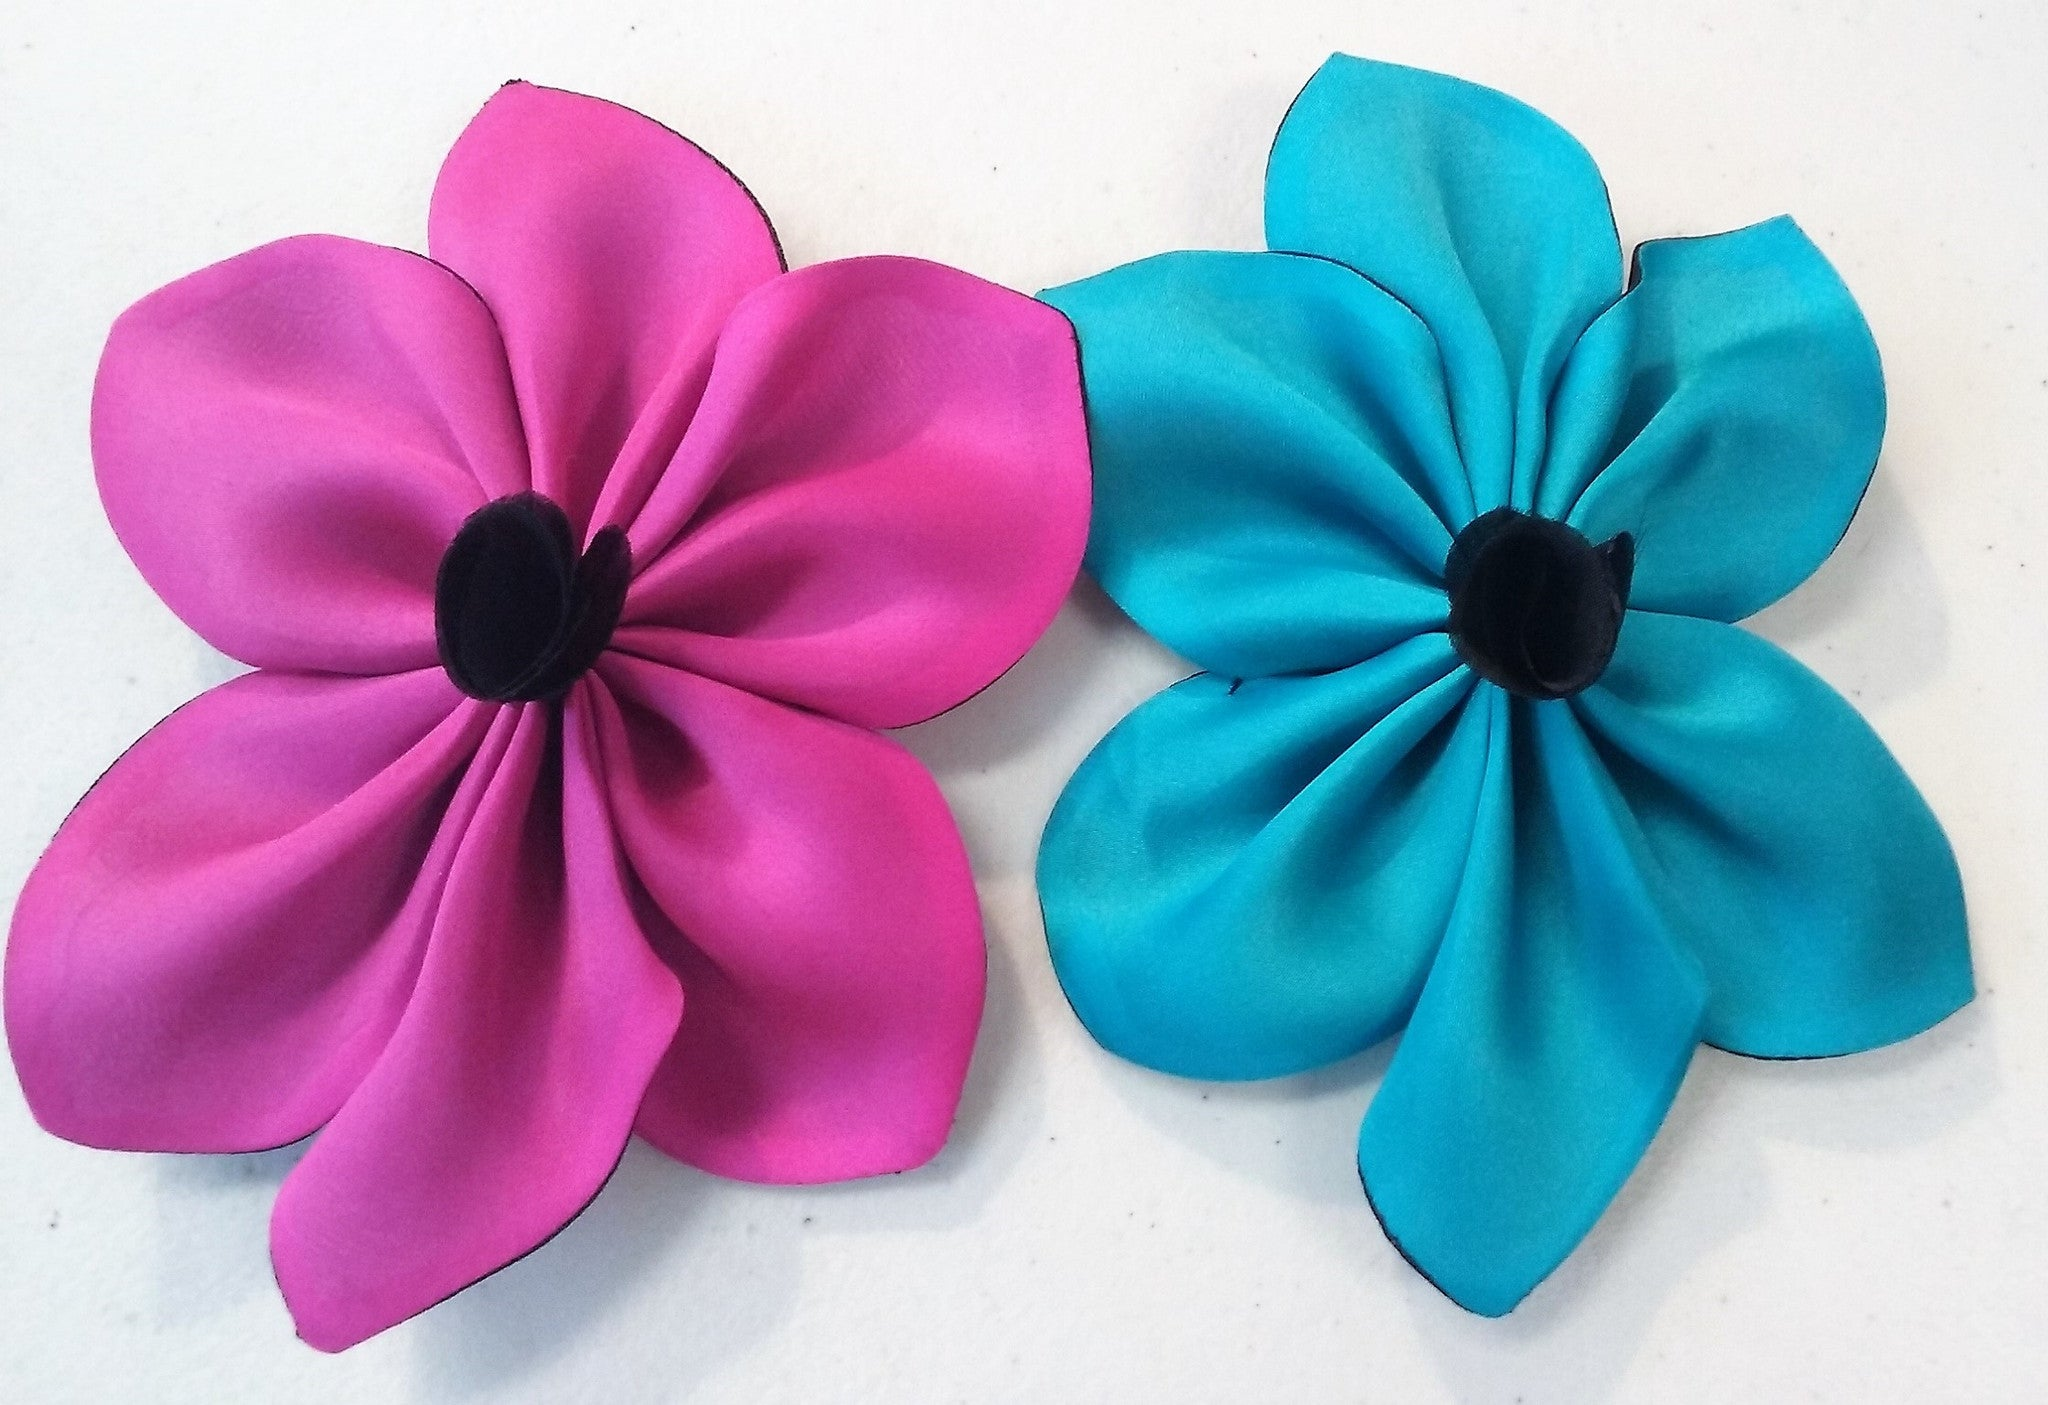 Mini flower pin minamann pink and blue satin faced organza flower pin with fabric center measurements mightylinksfo